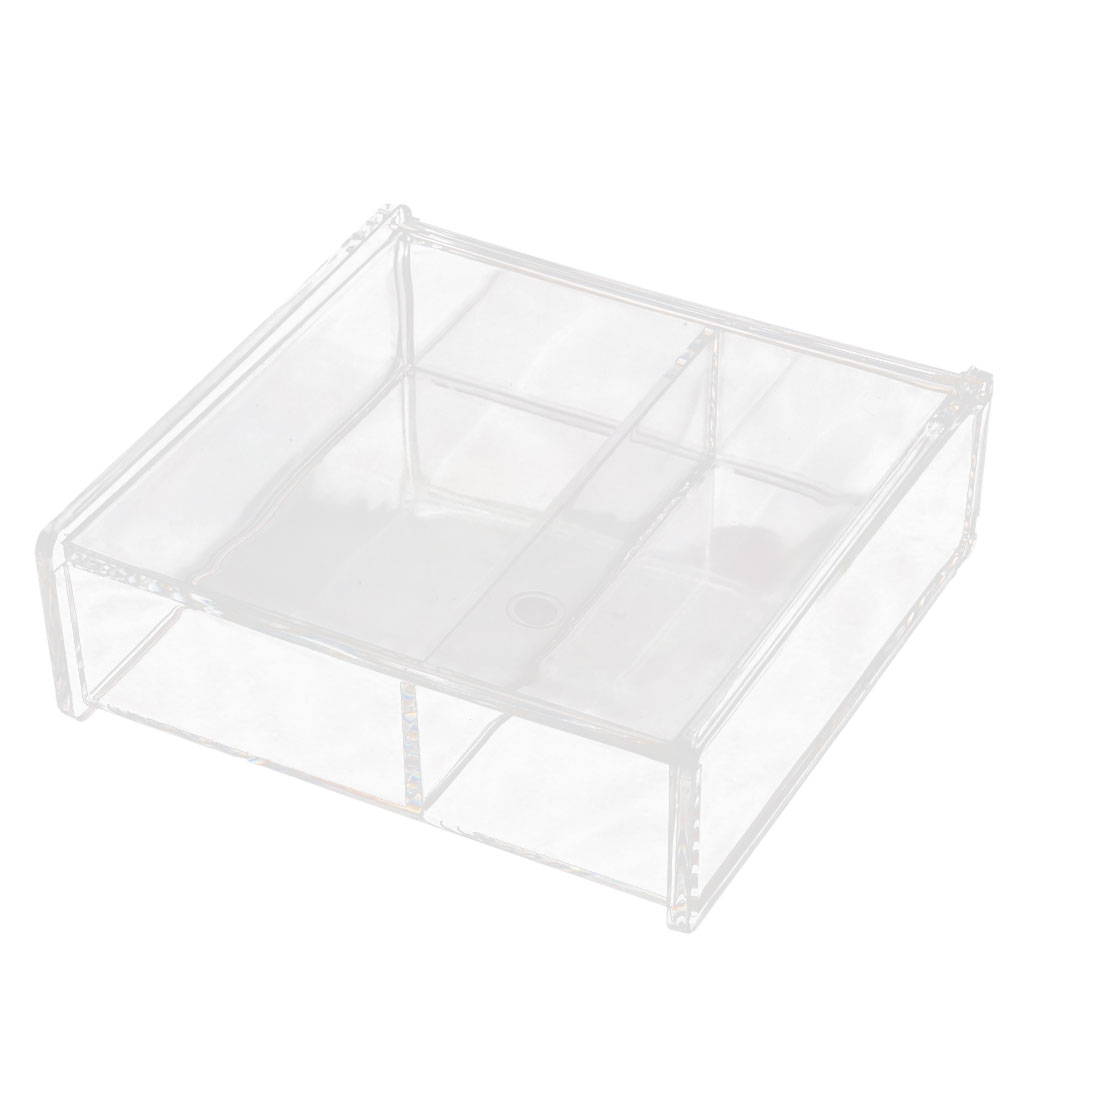 Acrylic Square Shape 2 Slots Cosmetics Jewelry Box Organizer Clear w Cover